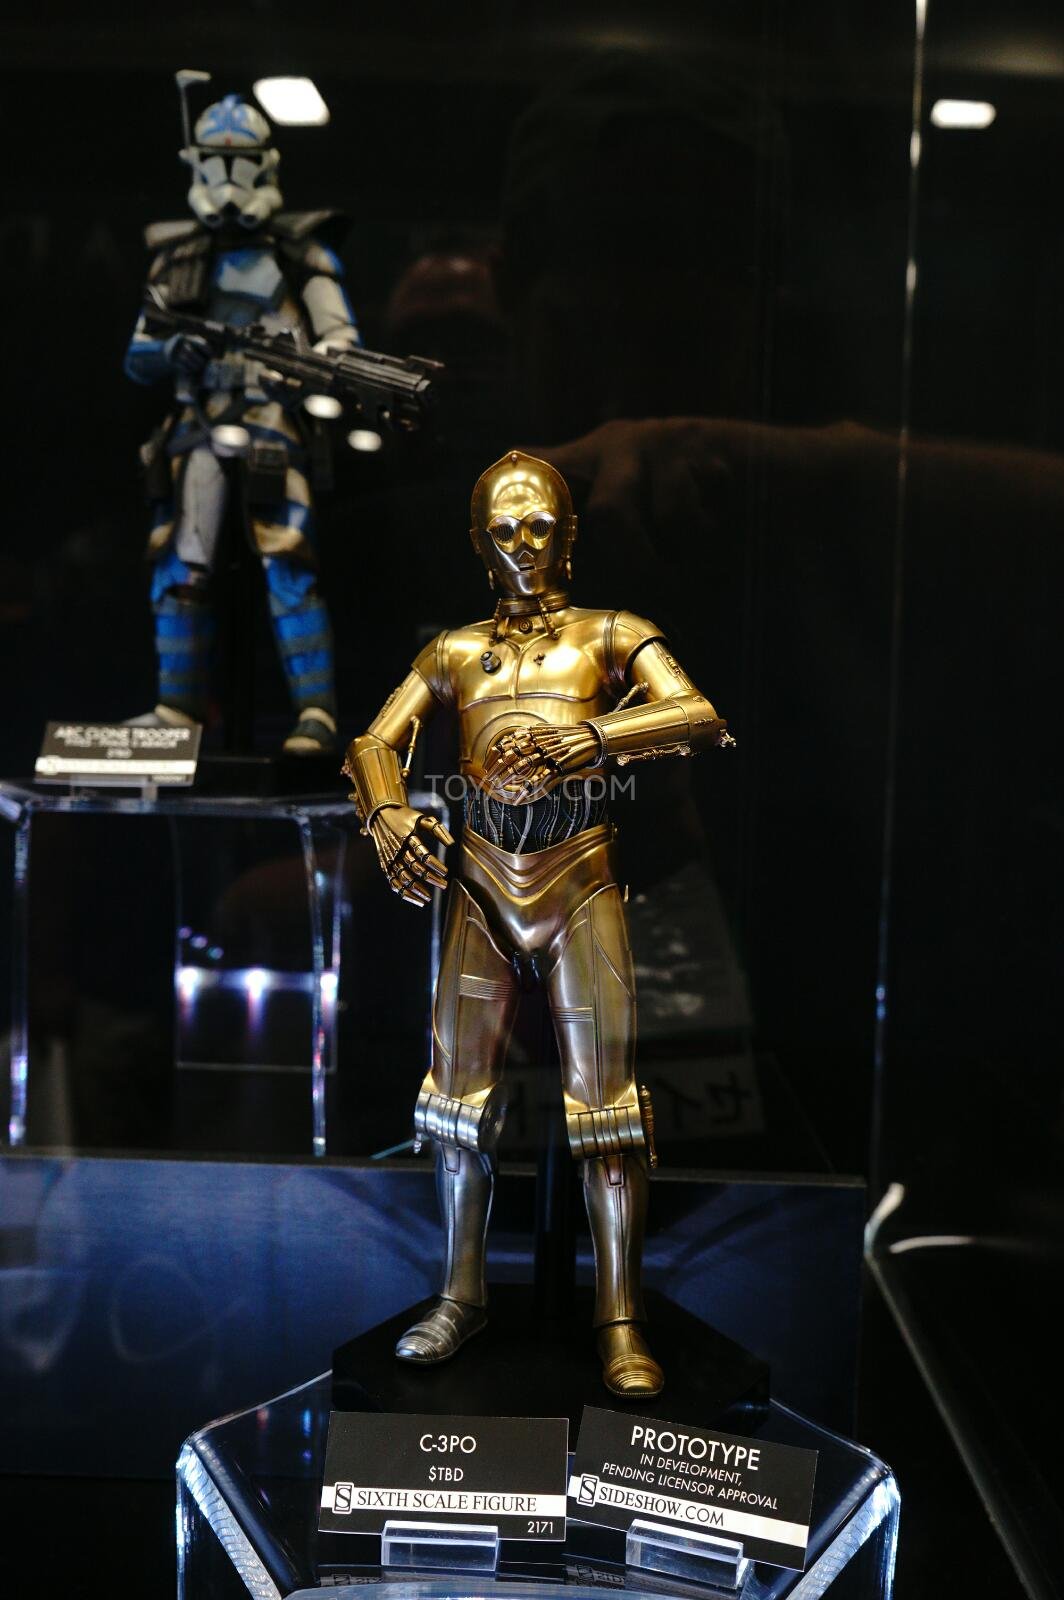 Sideshow Star Wars Sixth Scale Figures From SDCC 2014